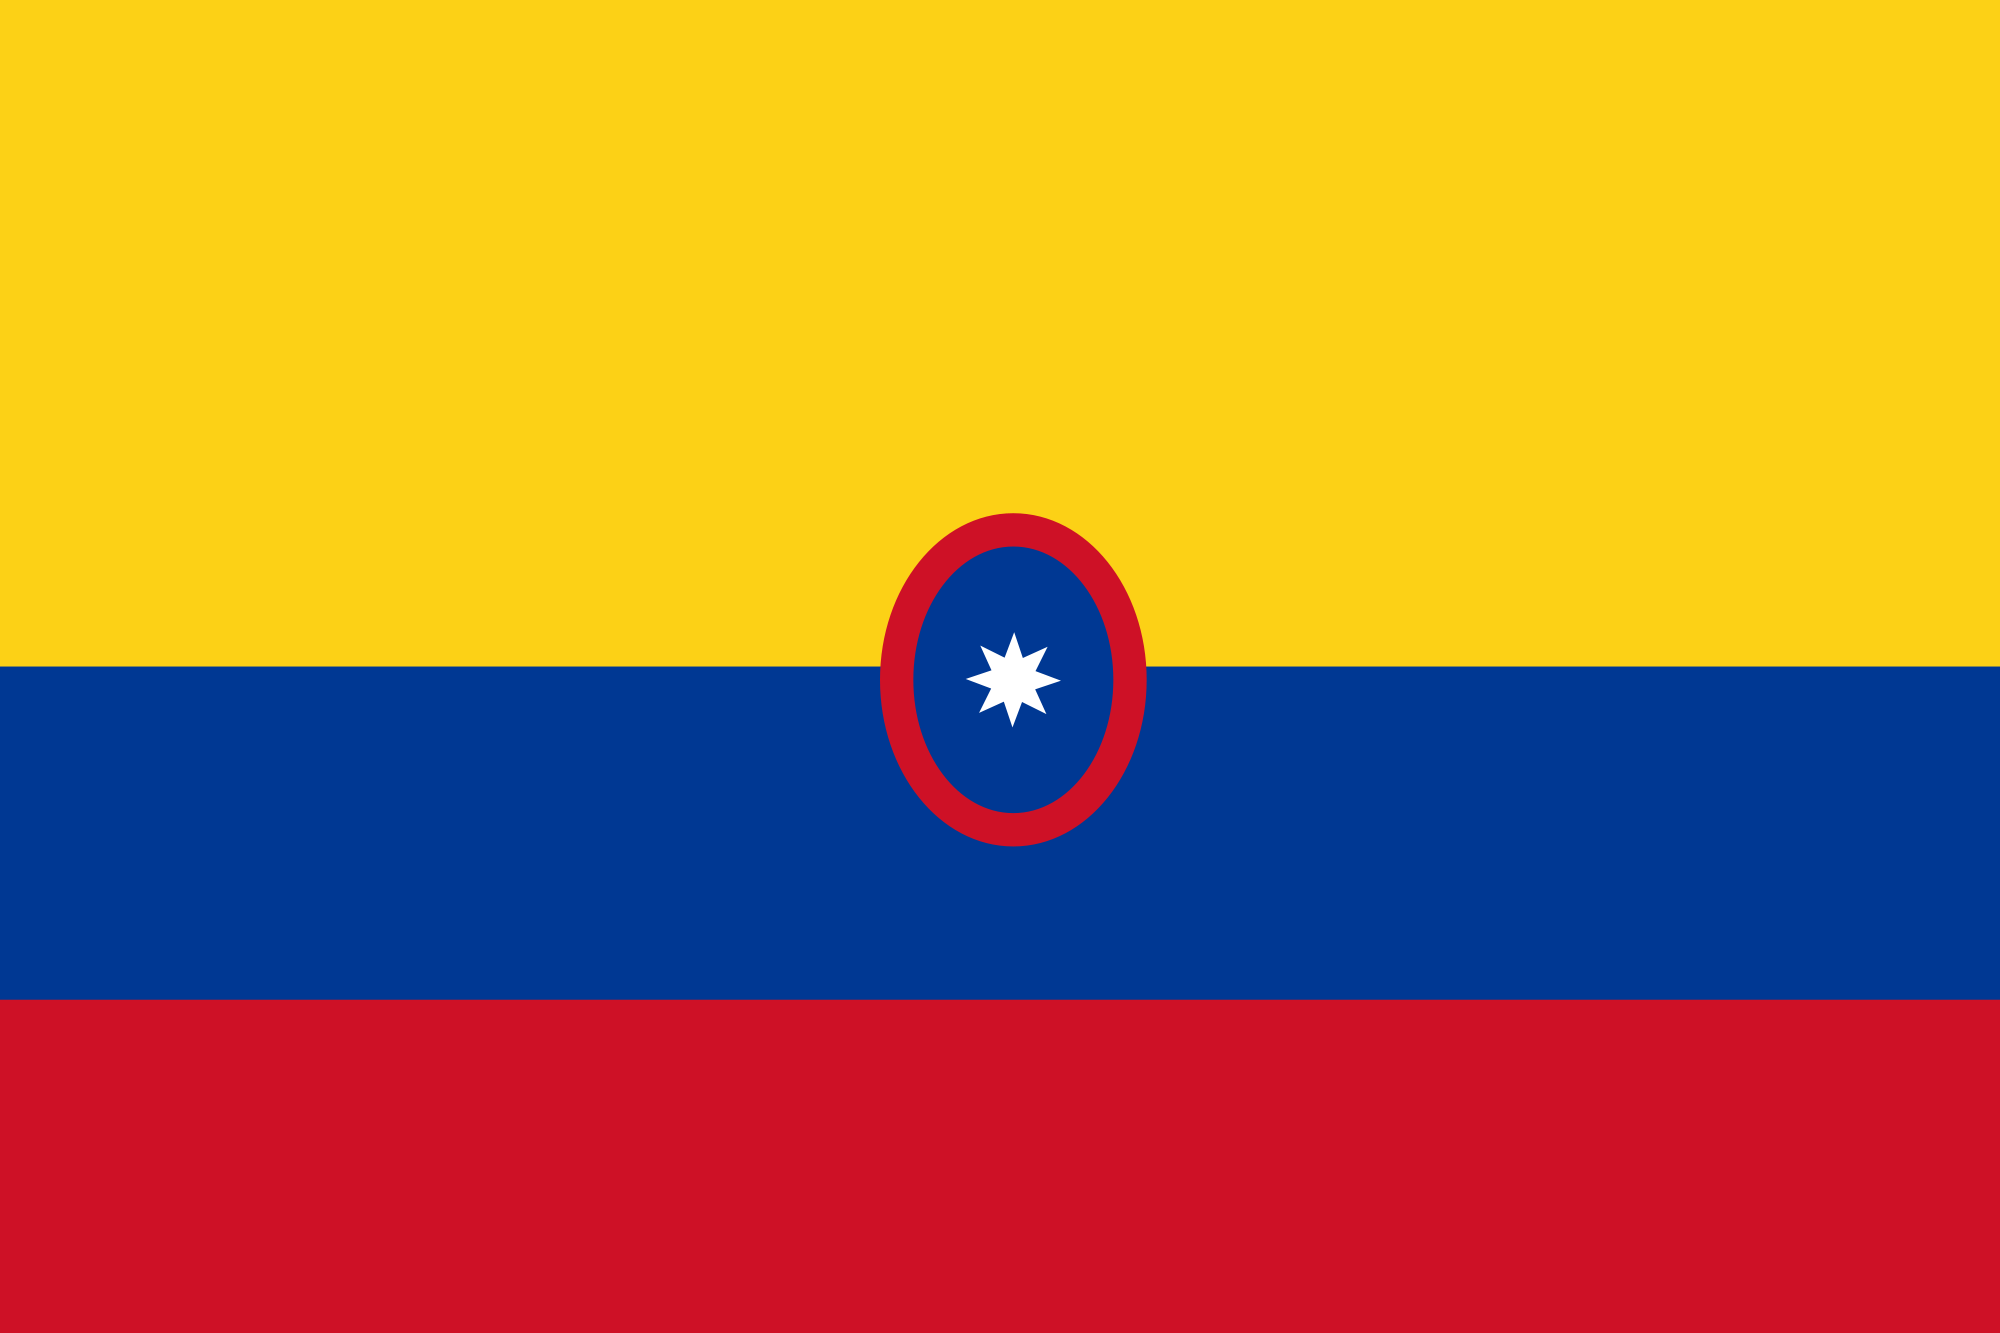 Colombia (Civil ensign)